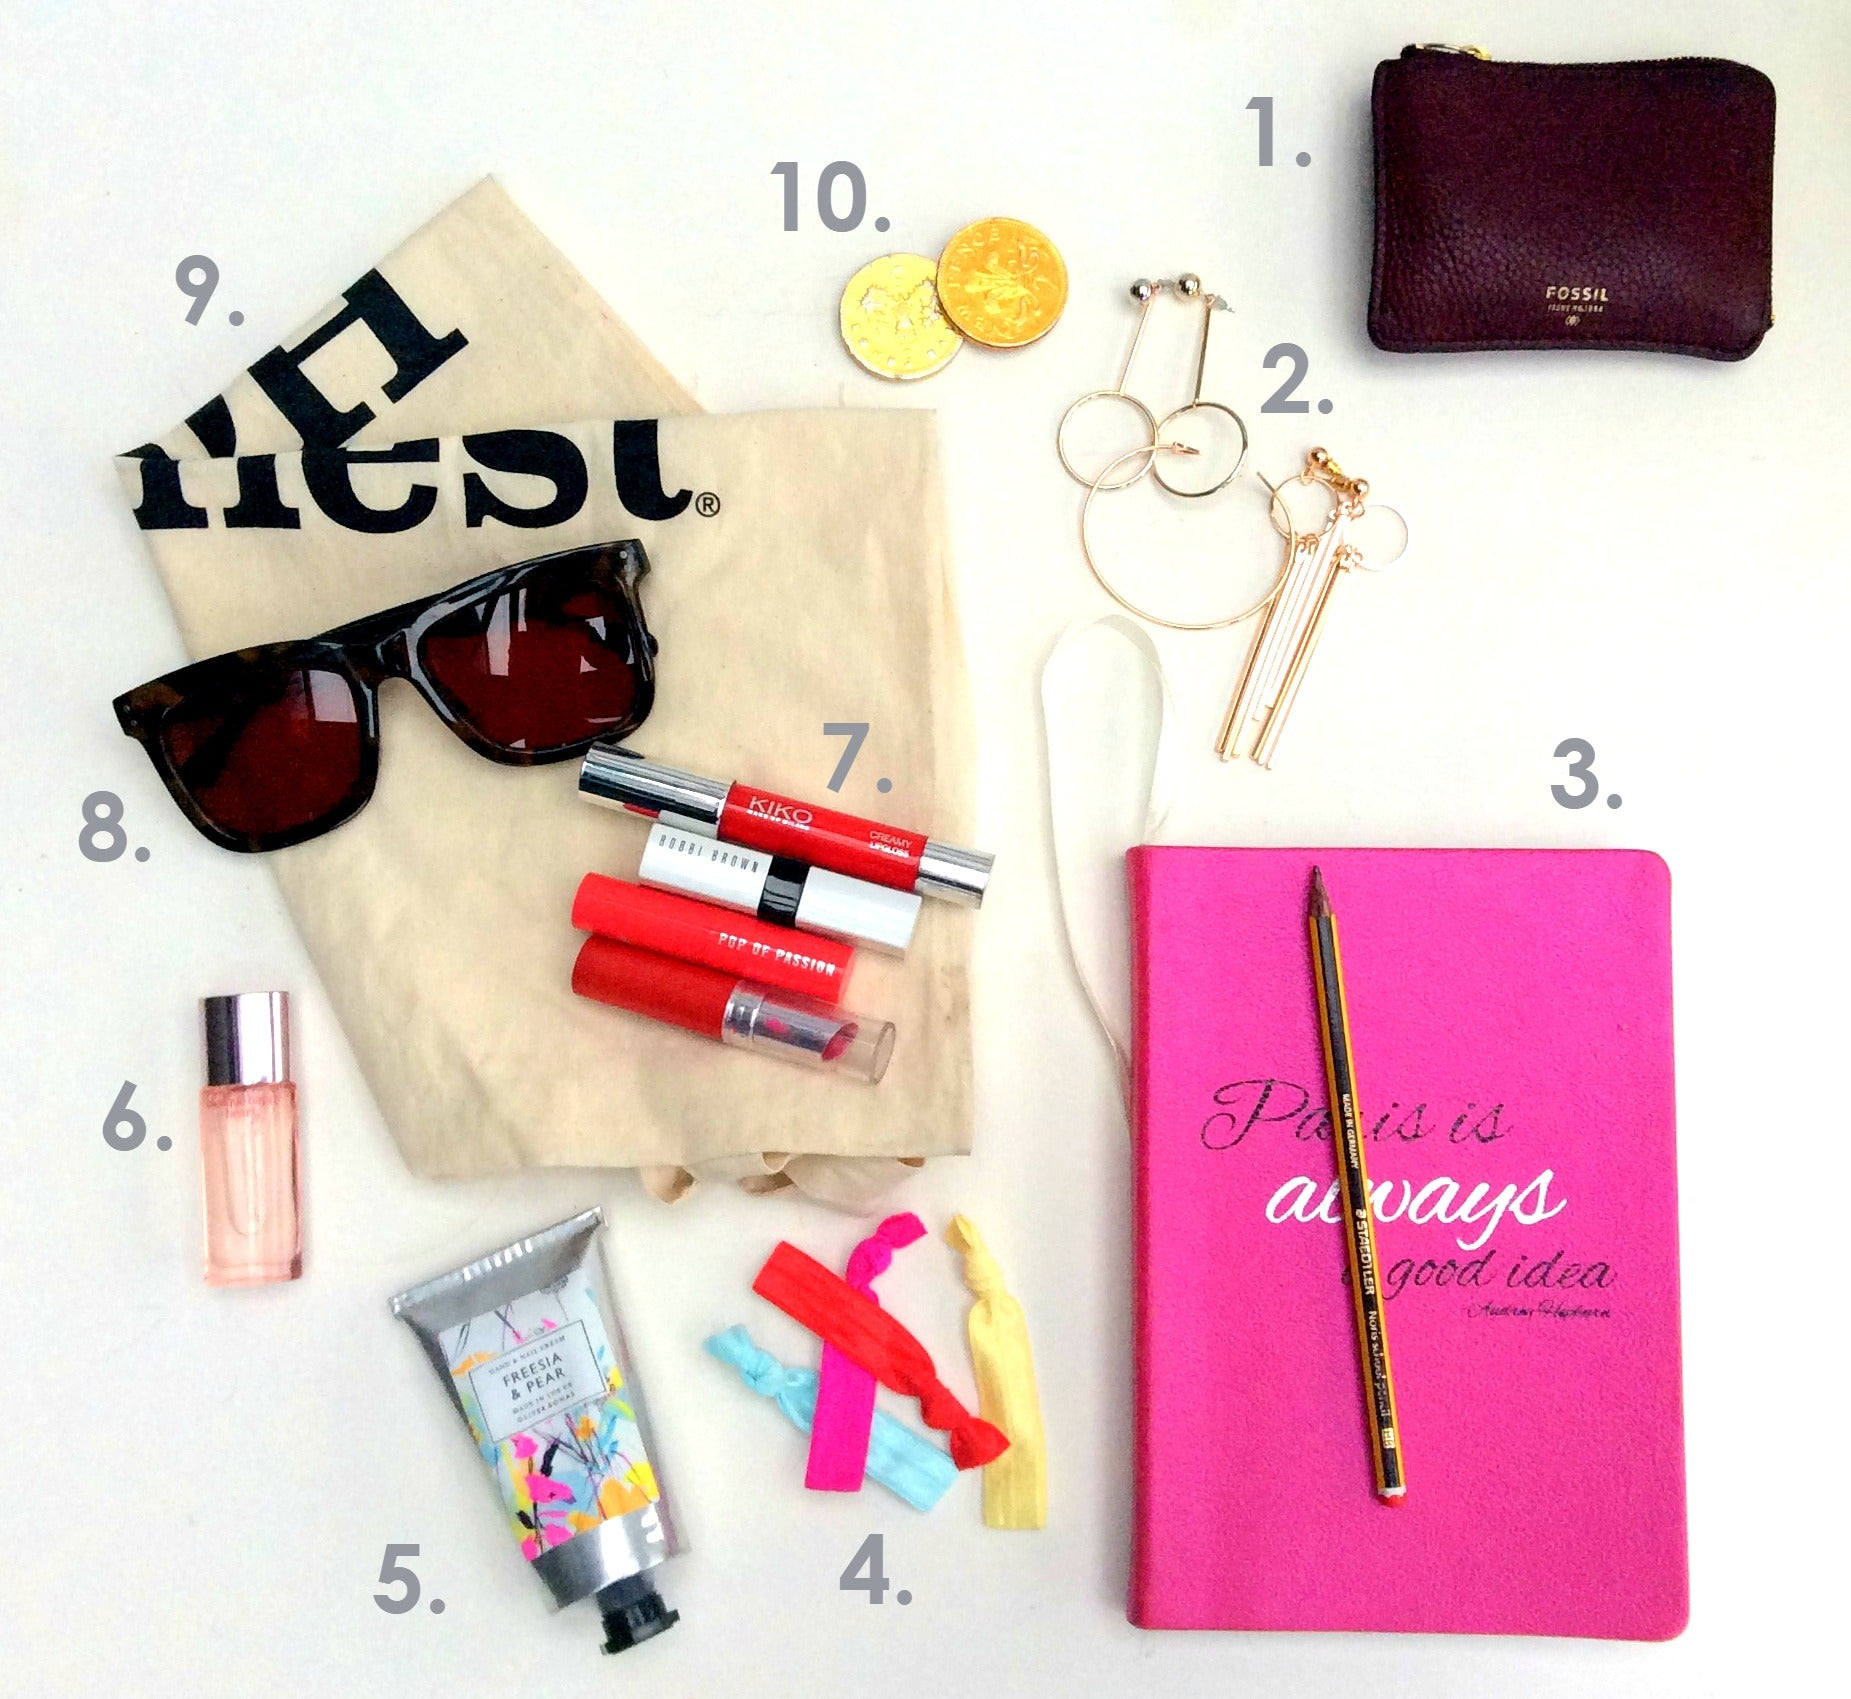 whats-in-your-handbag-cathy-padian-alices-wonders-with-jennifer-hamley